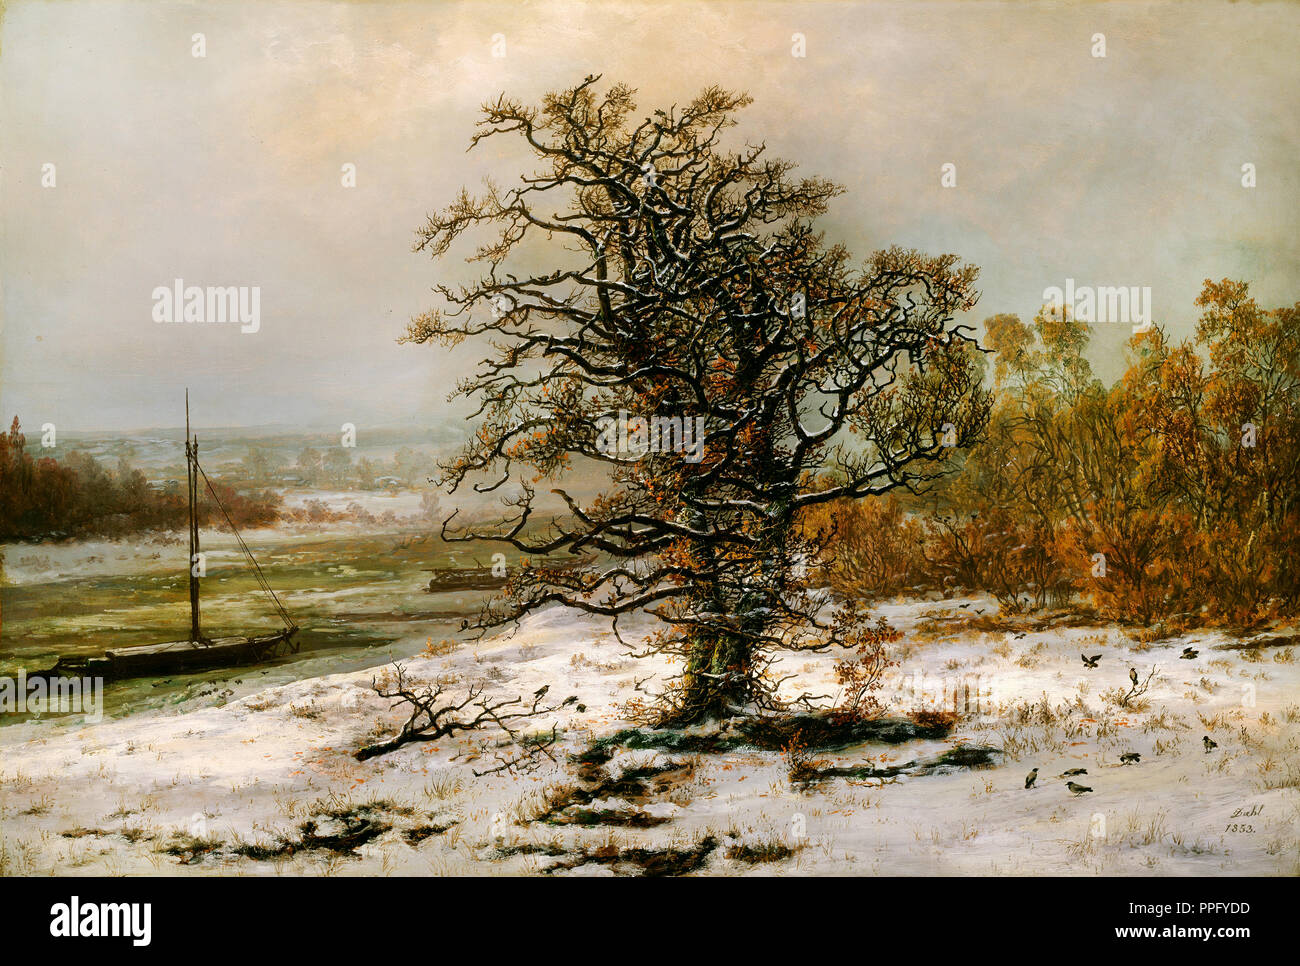 Johan Christian Dahl - Oak Tree by the Elbe in Winter 1853 Oil on canvas. National Gallery of Norway, Oslo, Norway. - Stock Image